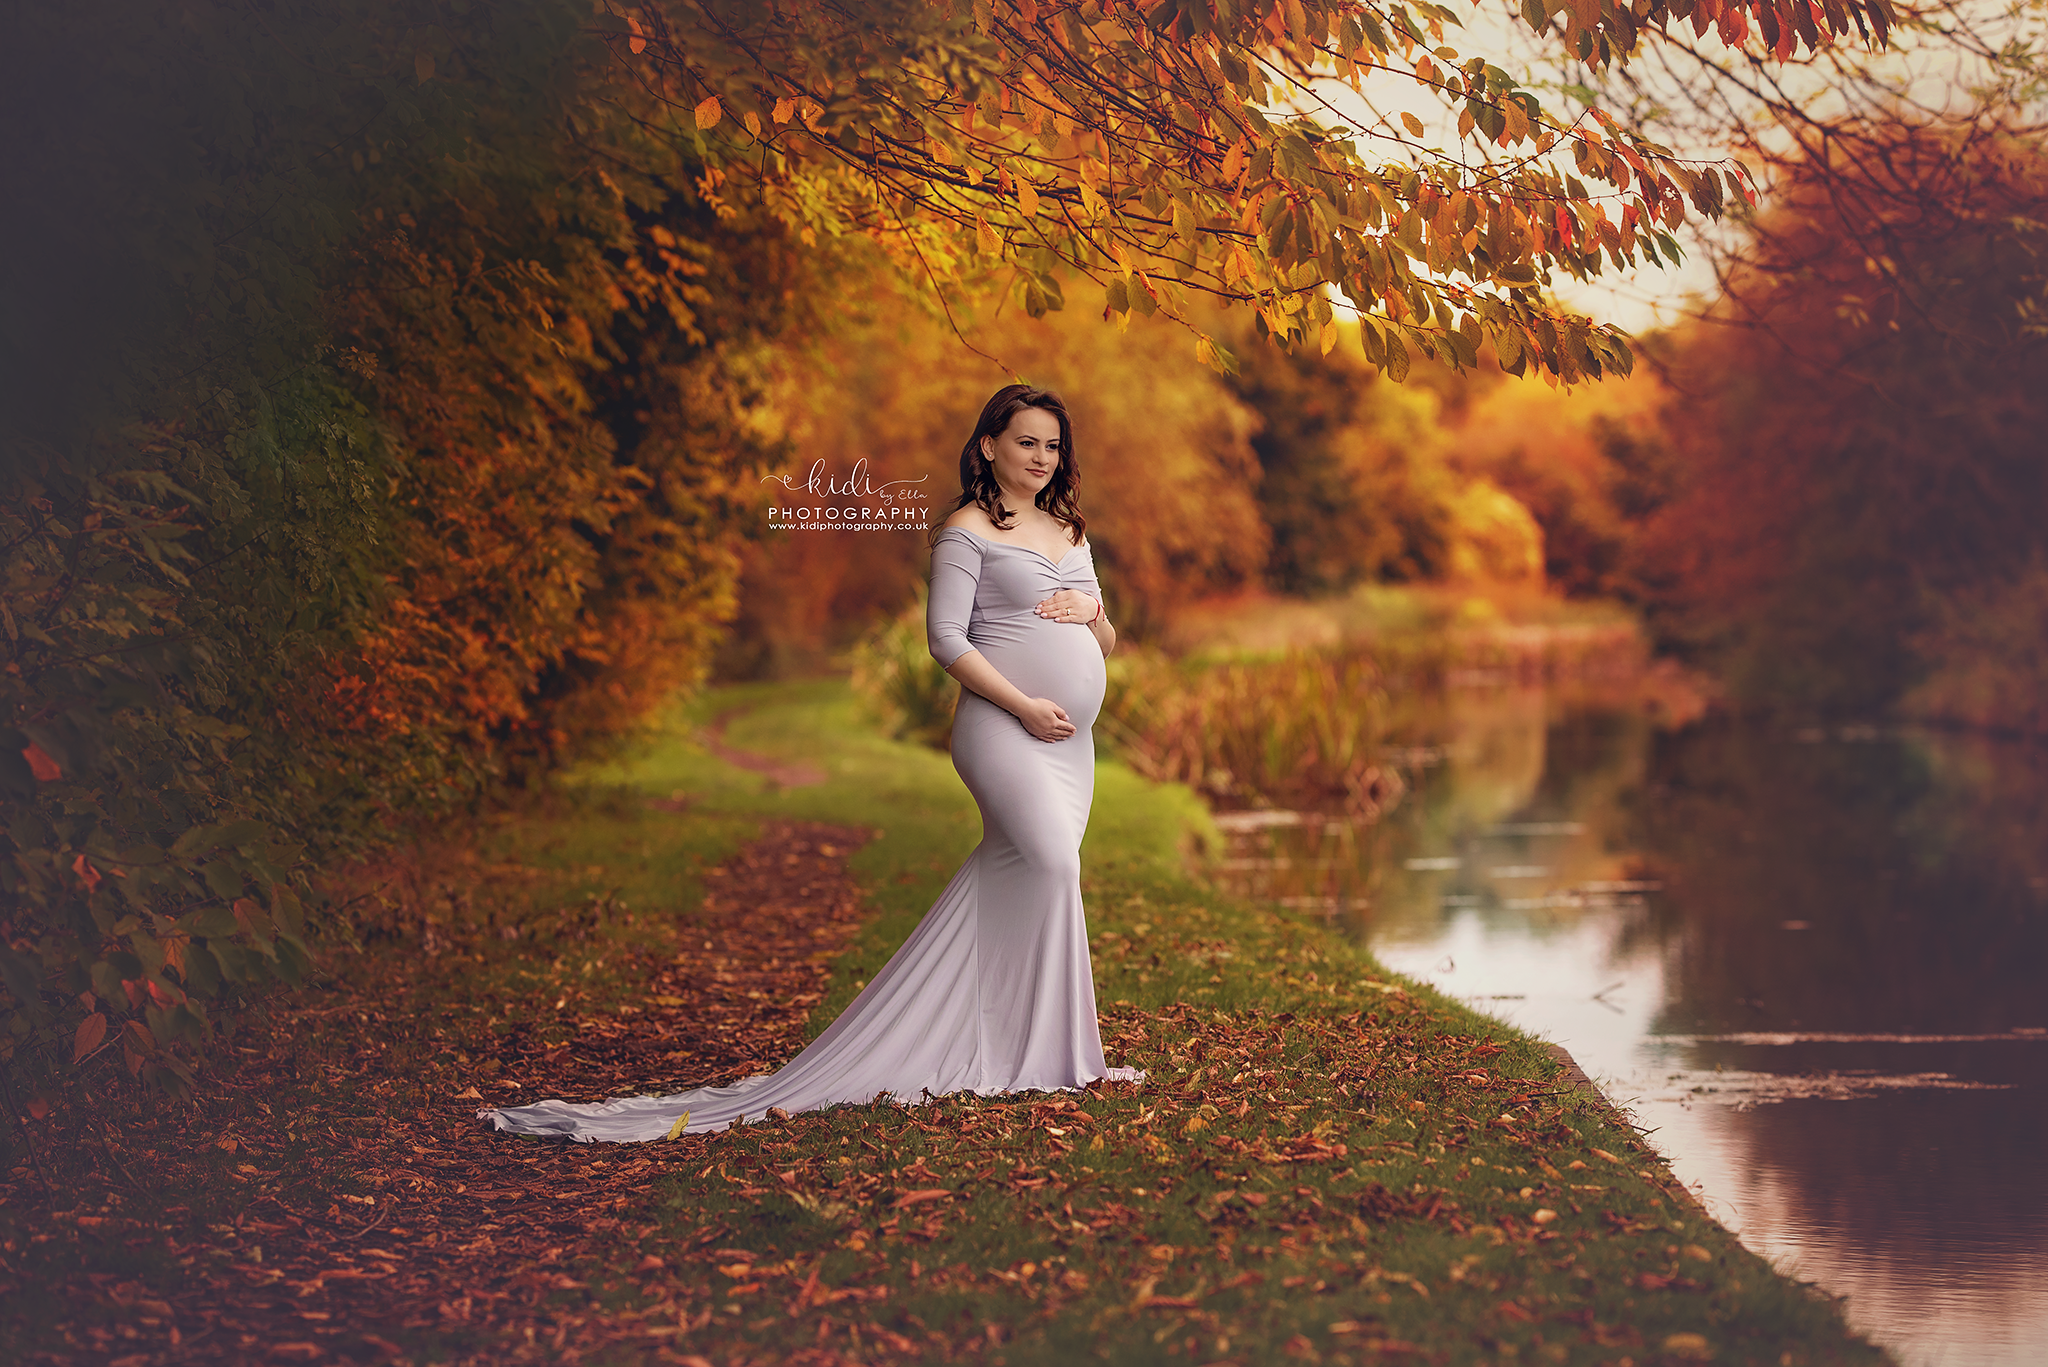 Maternity Photography Birmingham